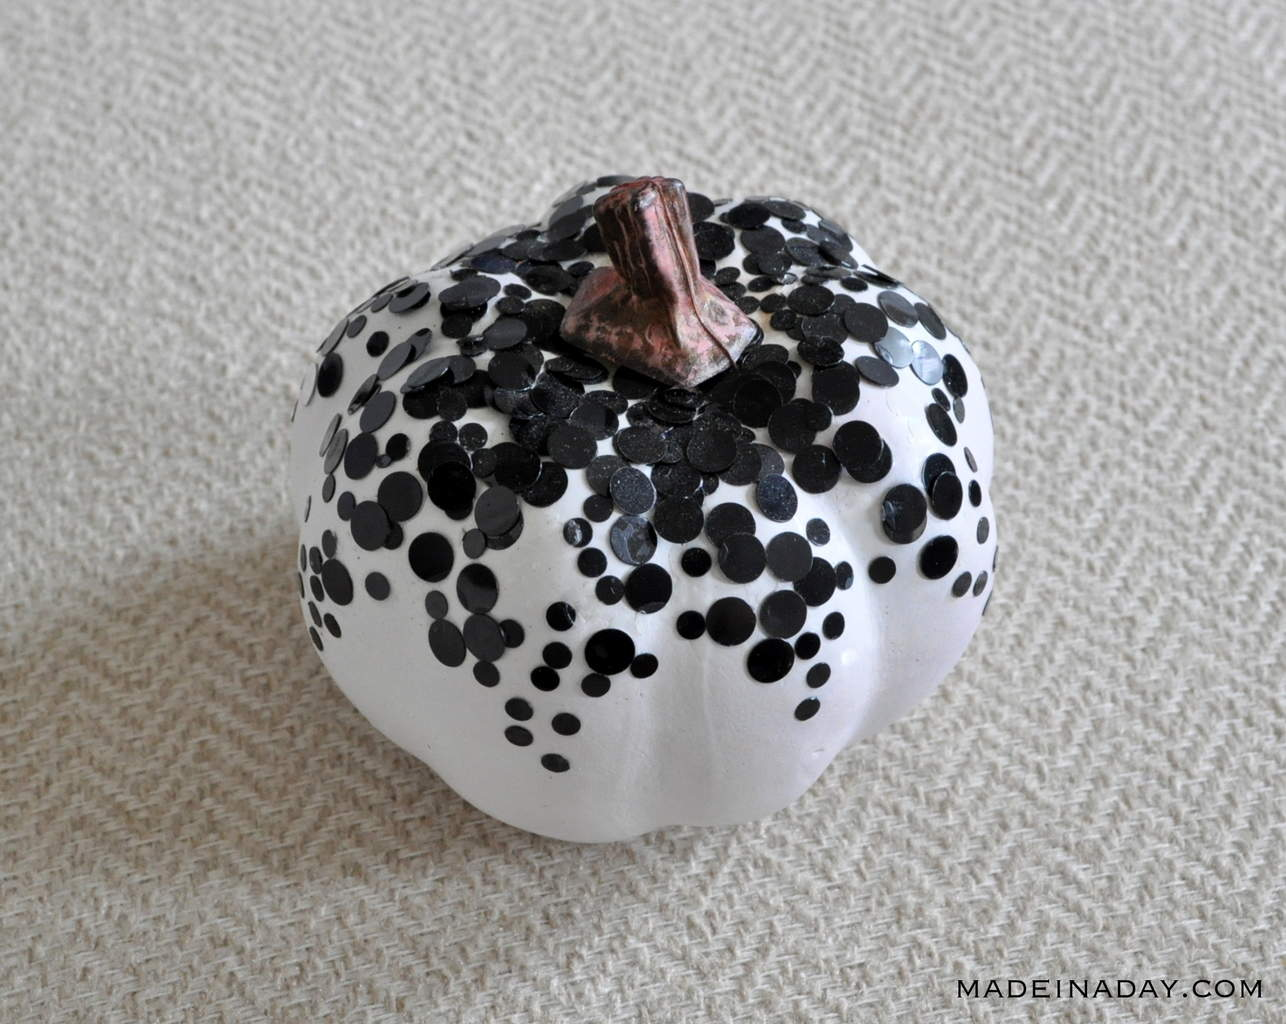 Black Polka Dot Confetti Pumpkin madeinaday.com